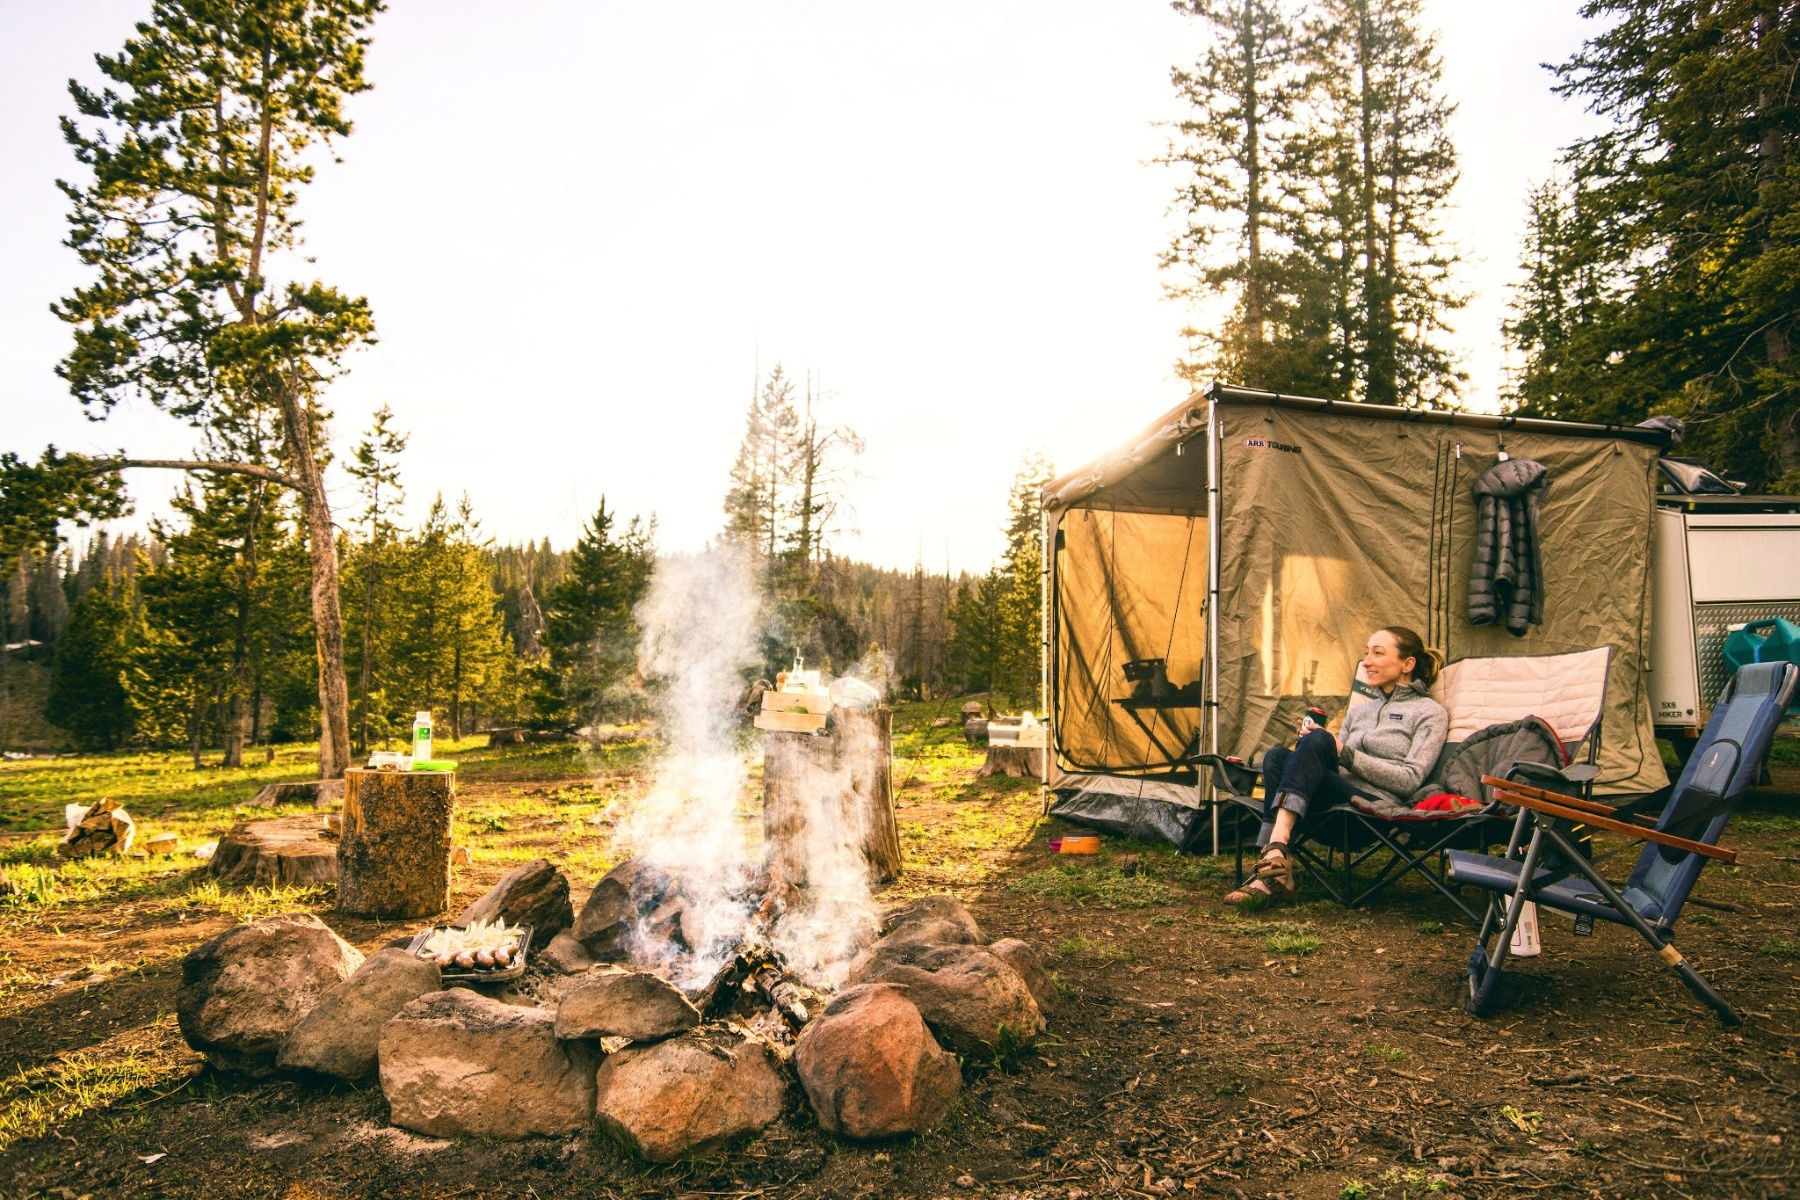 Camping Romantic Getaway on a budget